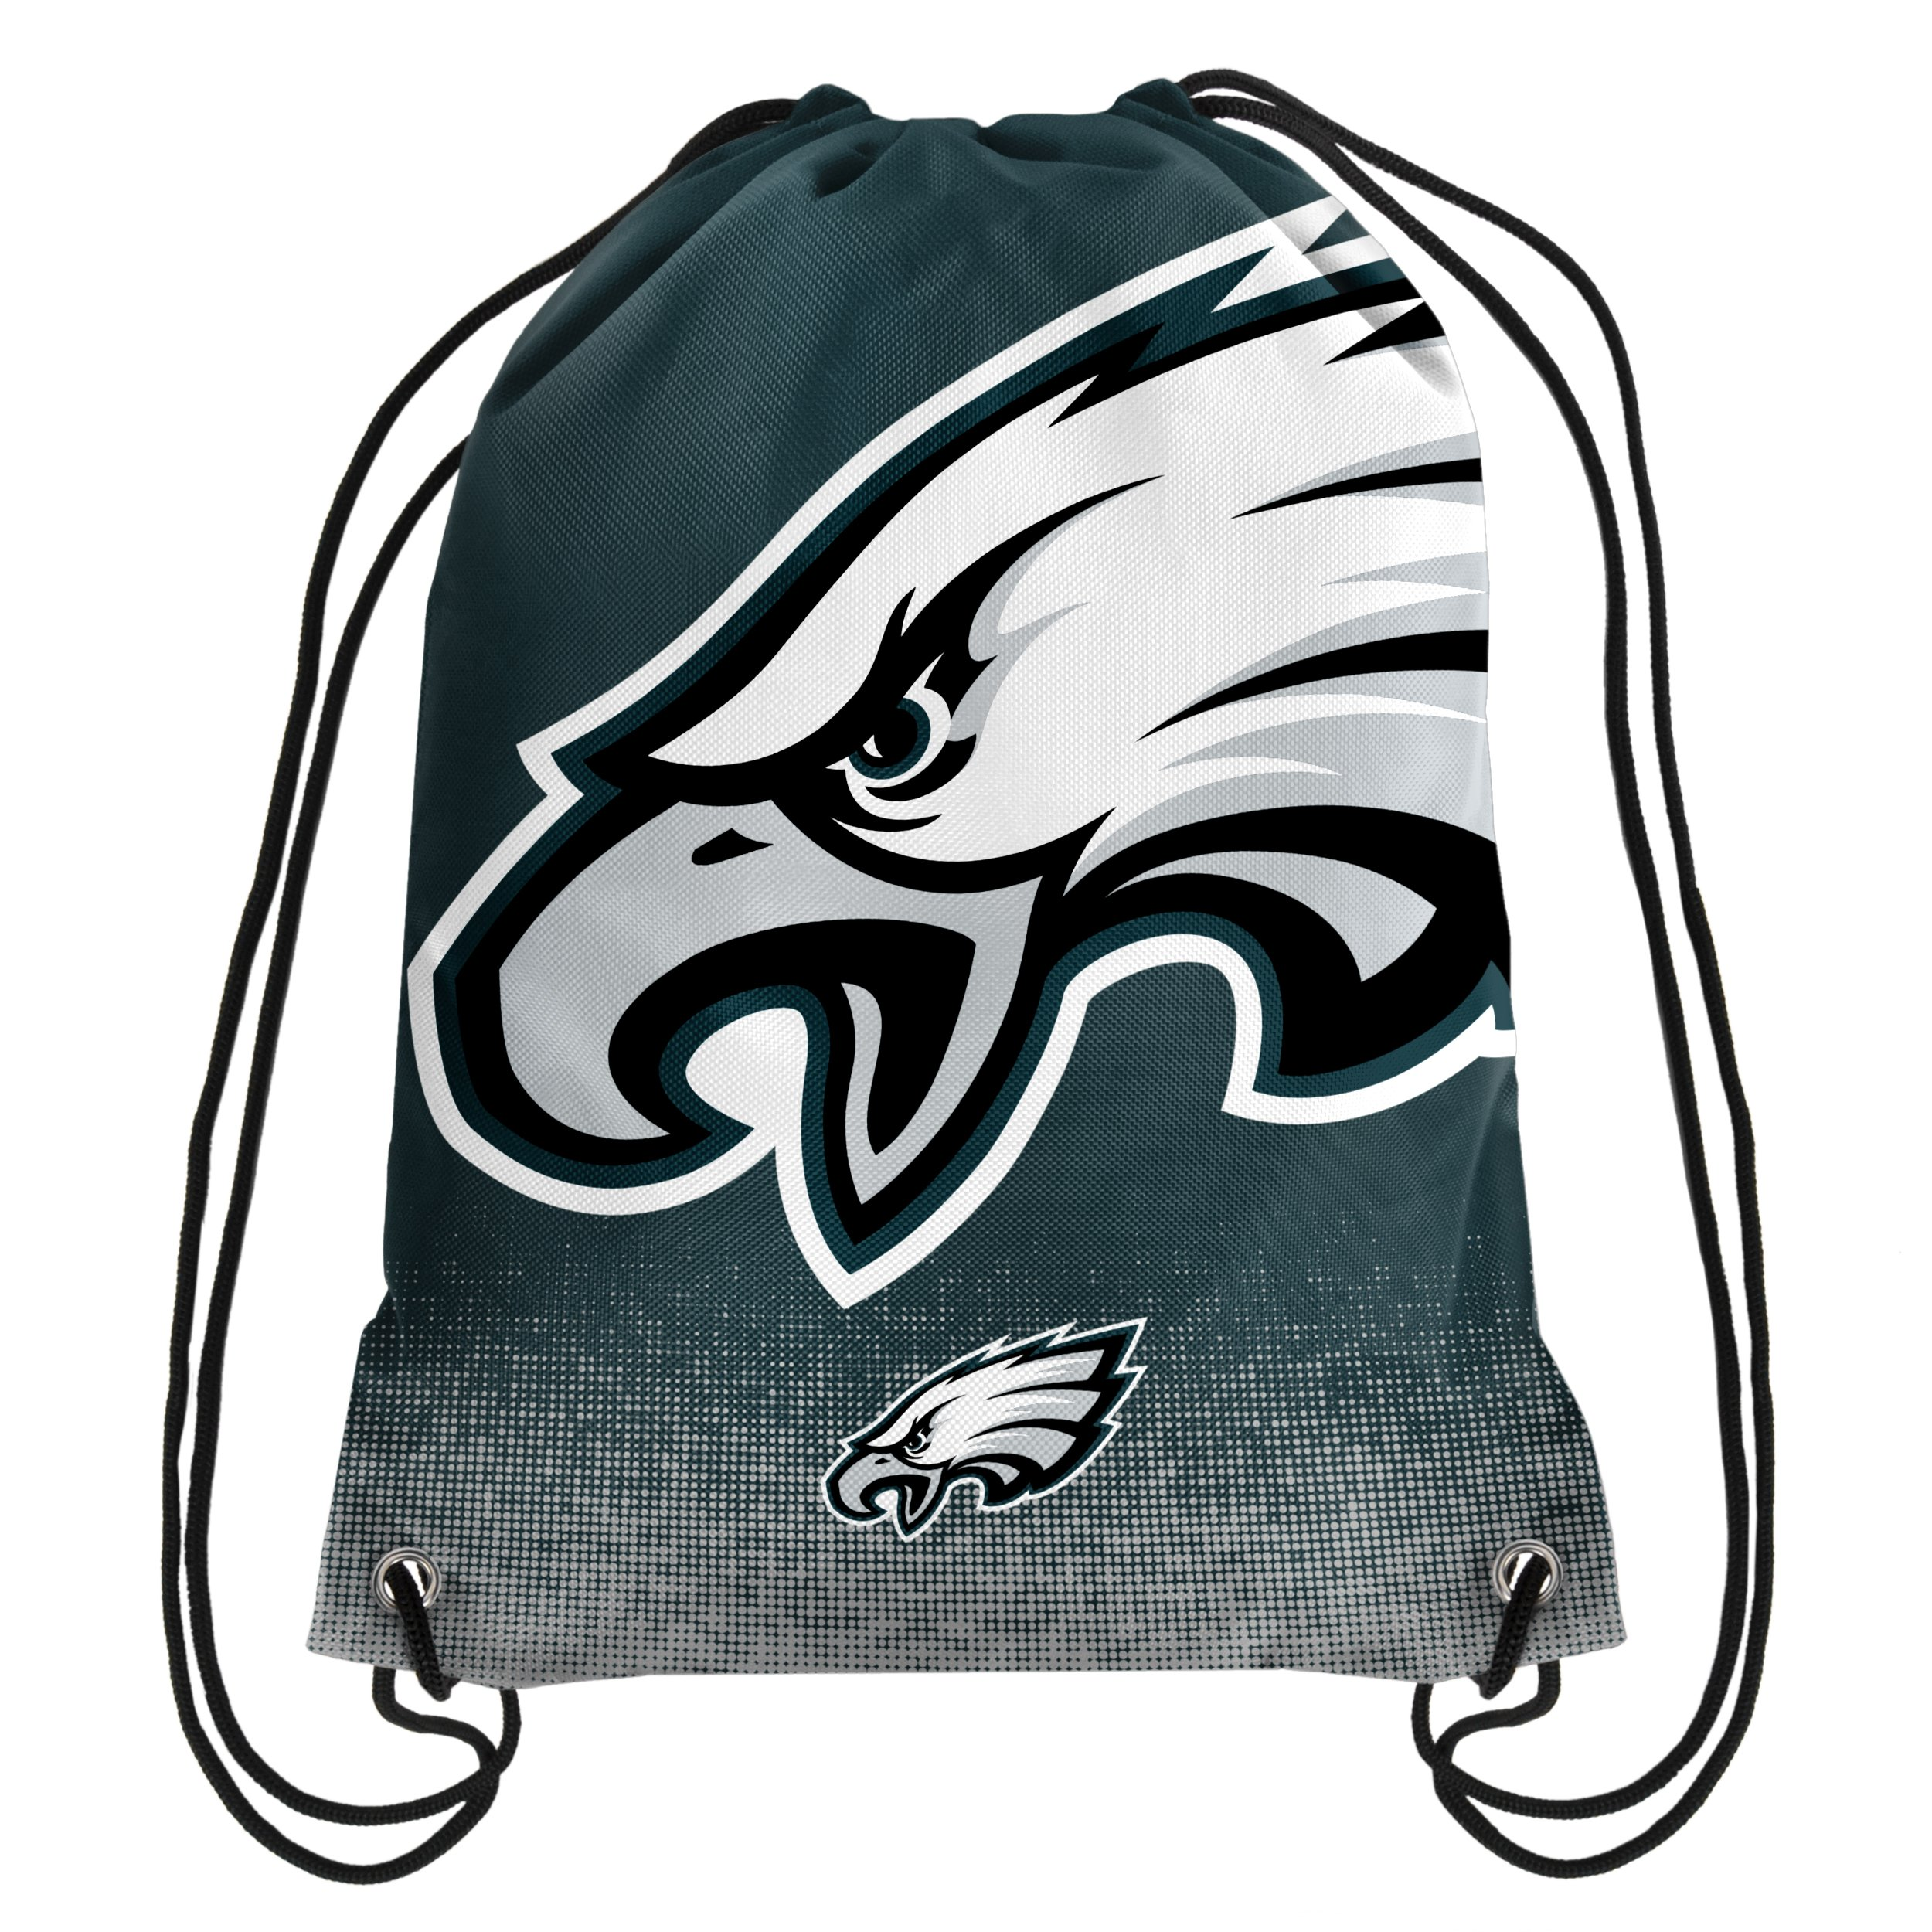 Forever Collectibles NFL Unisex Gradient Drawstring Backpackgradient Drawstring Backpack, Philadelphia Eagles, Standard